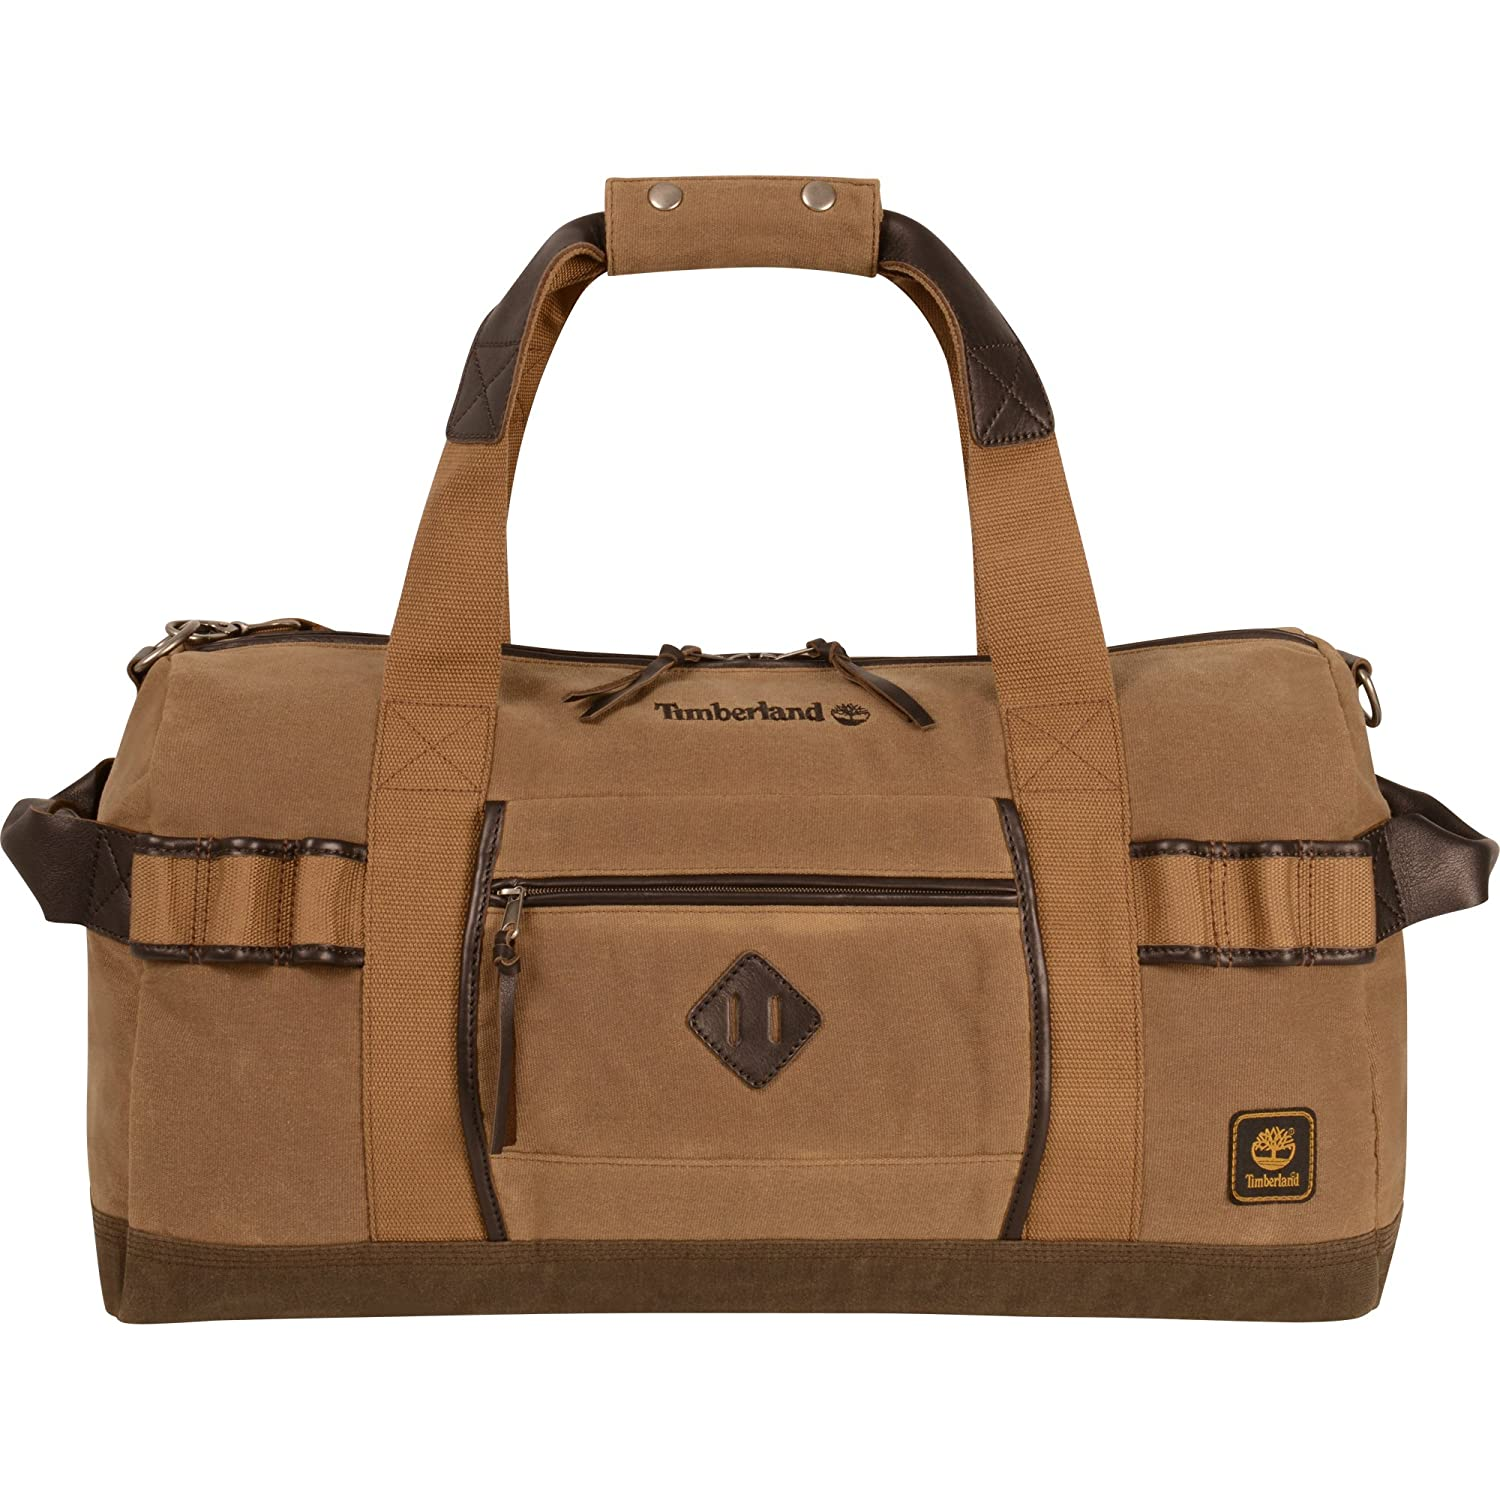 47ef959a8004 Leather Duffel Bags South Africa